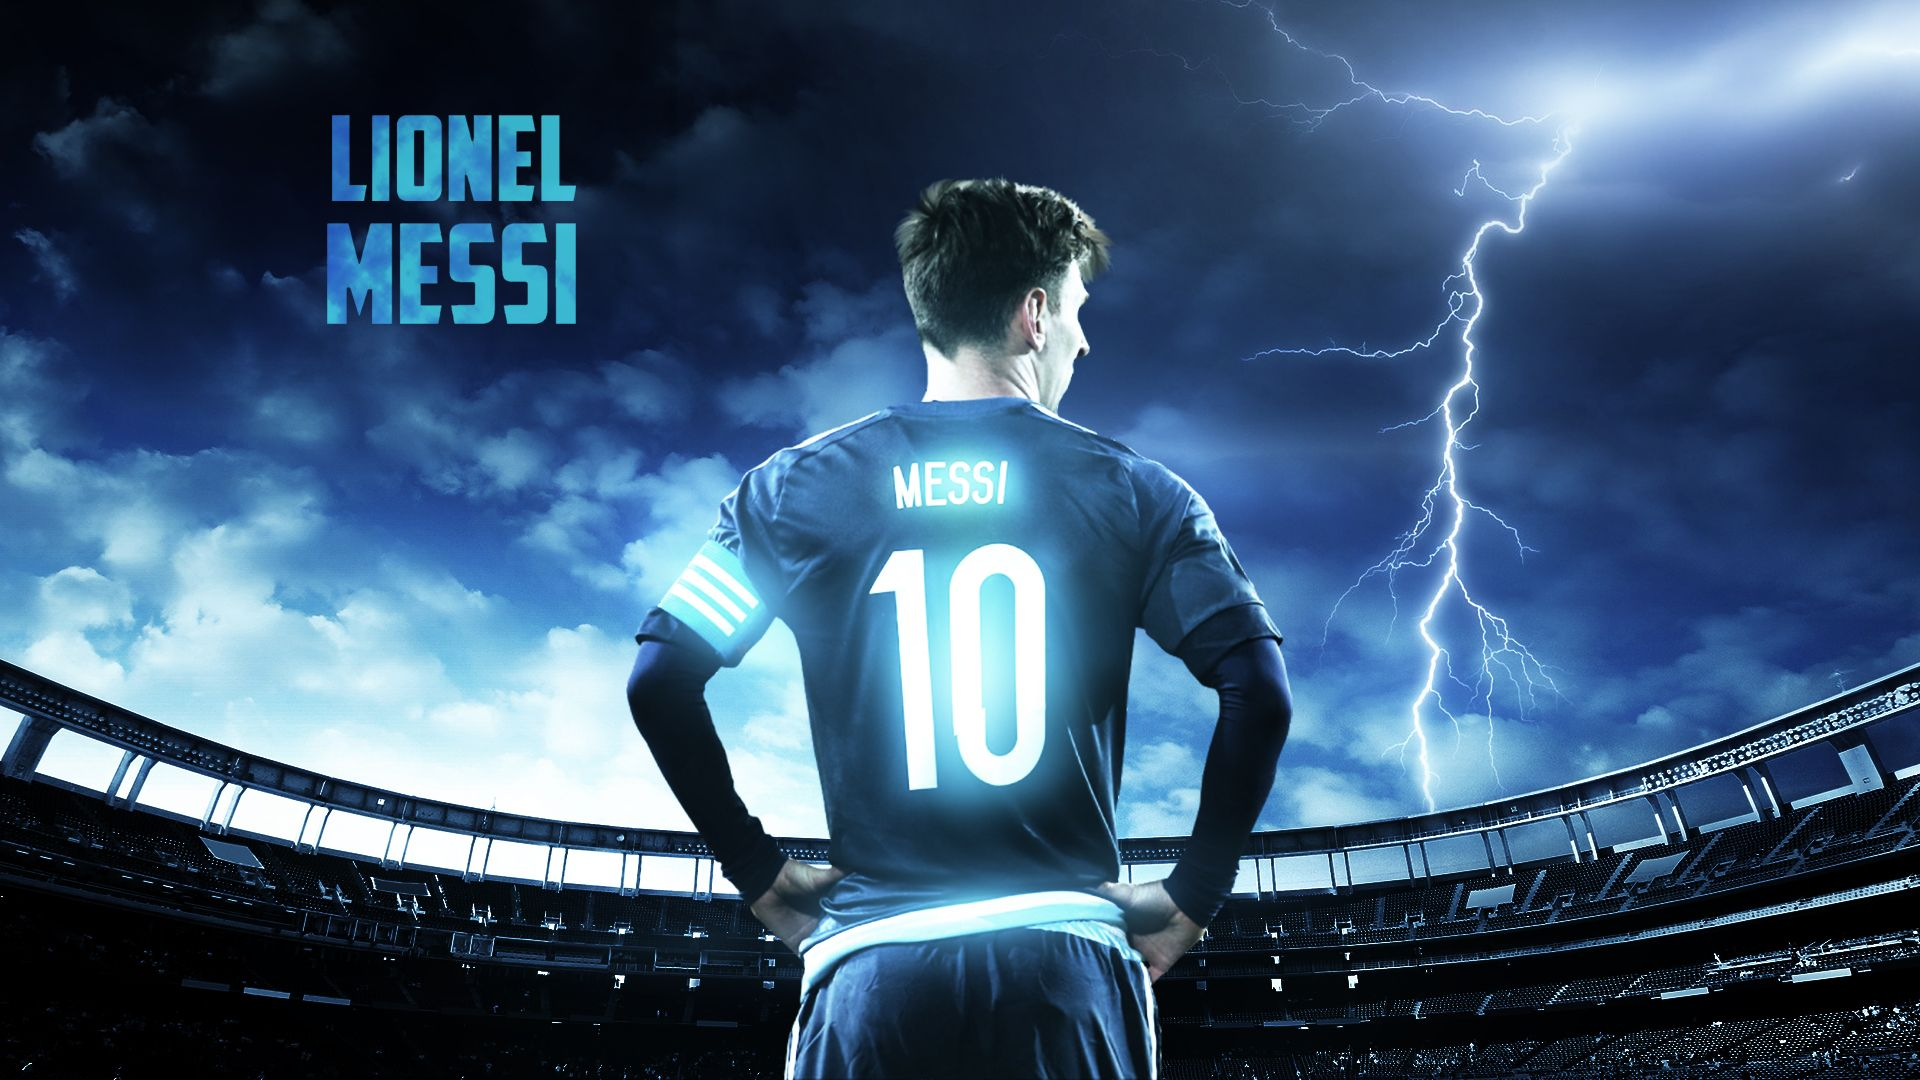 Messi 3d Wallpaper | Wallpaper | Lionel messi wallpapers, Messi, Messi 2017